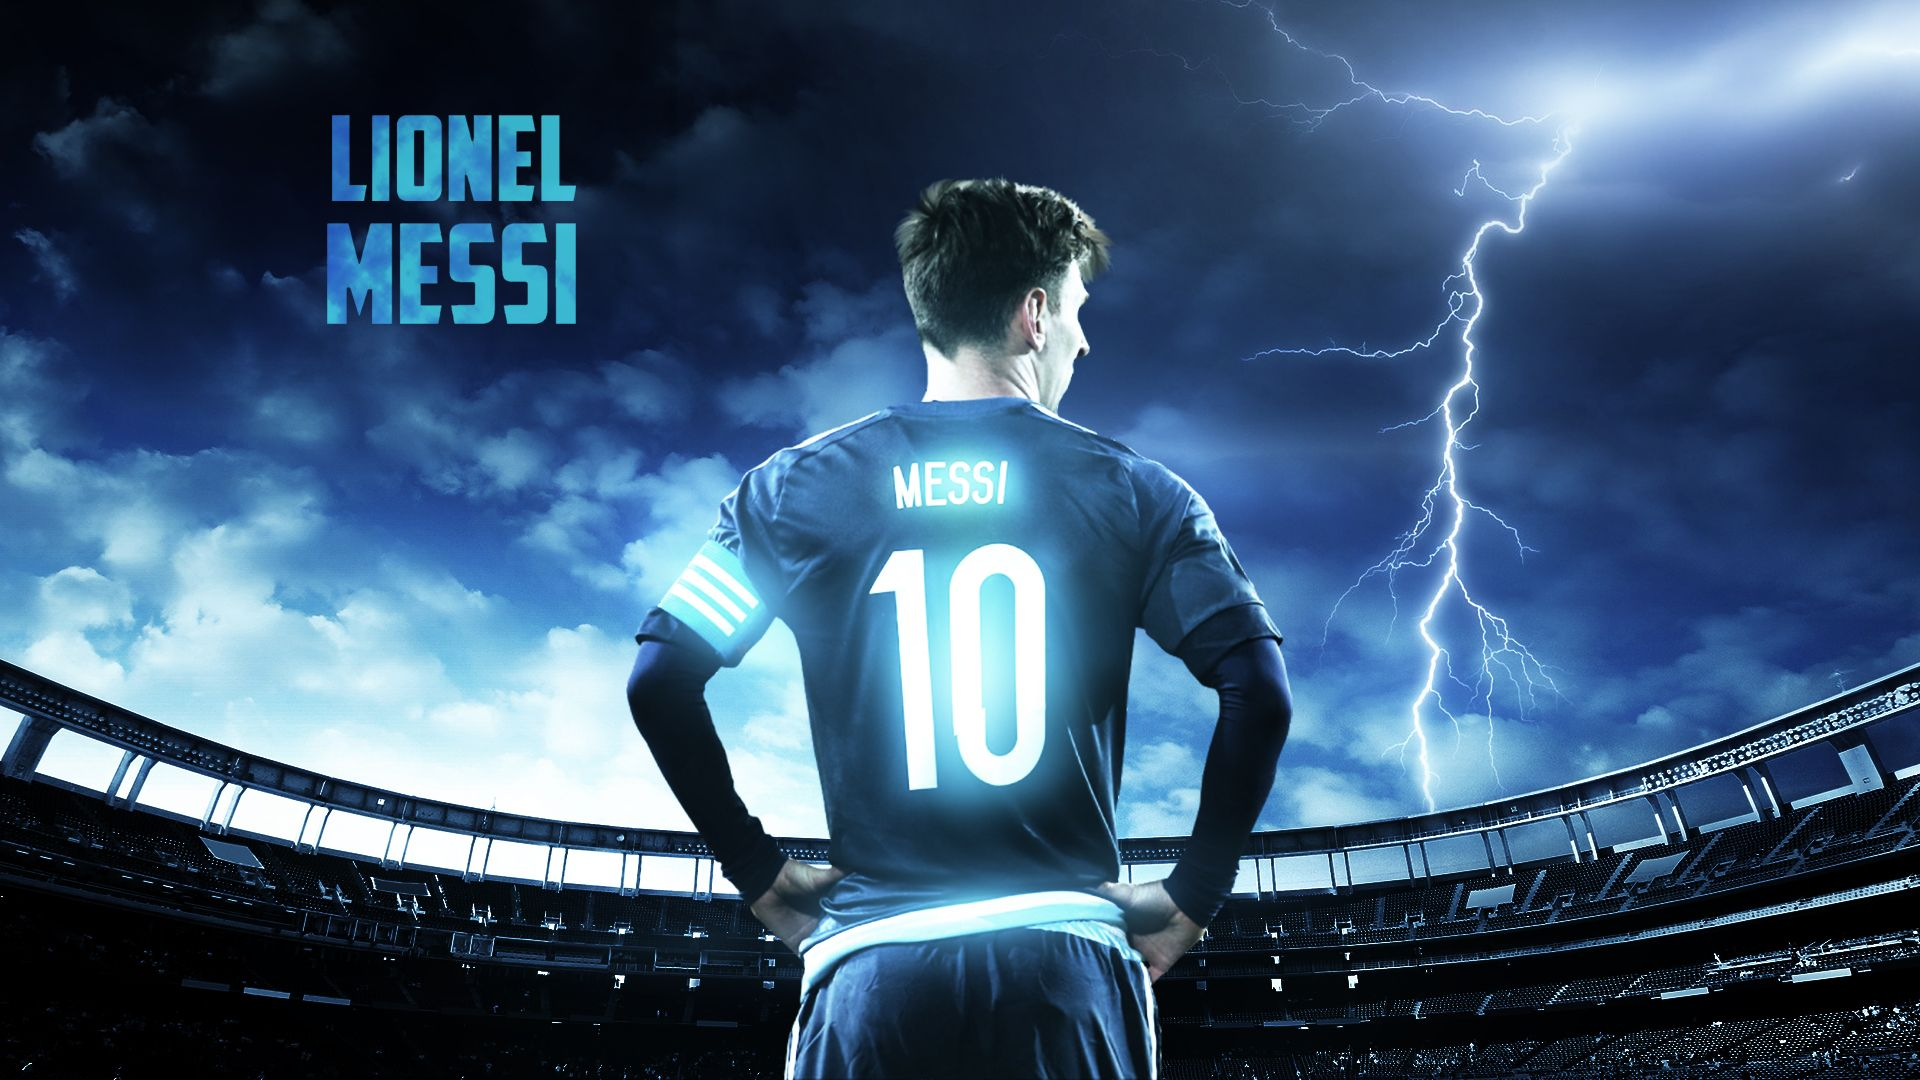 Messi 3d Wallpaper | Wallpaper | Lionel messi wallpapers, Messi, Messi 2017